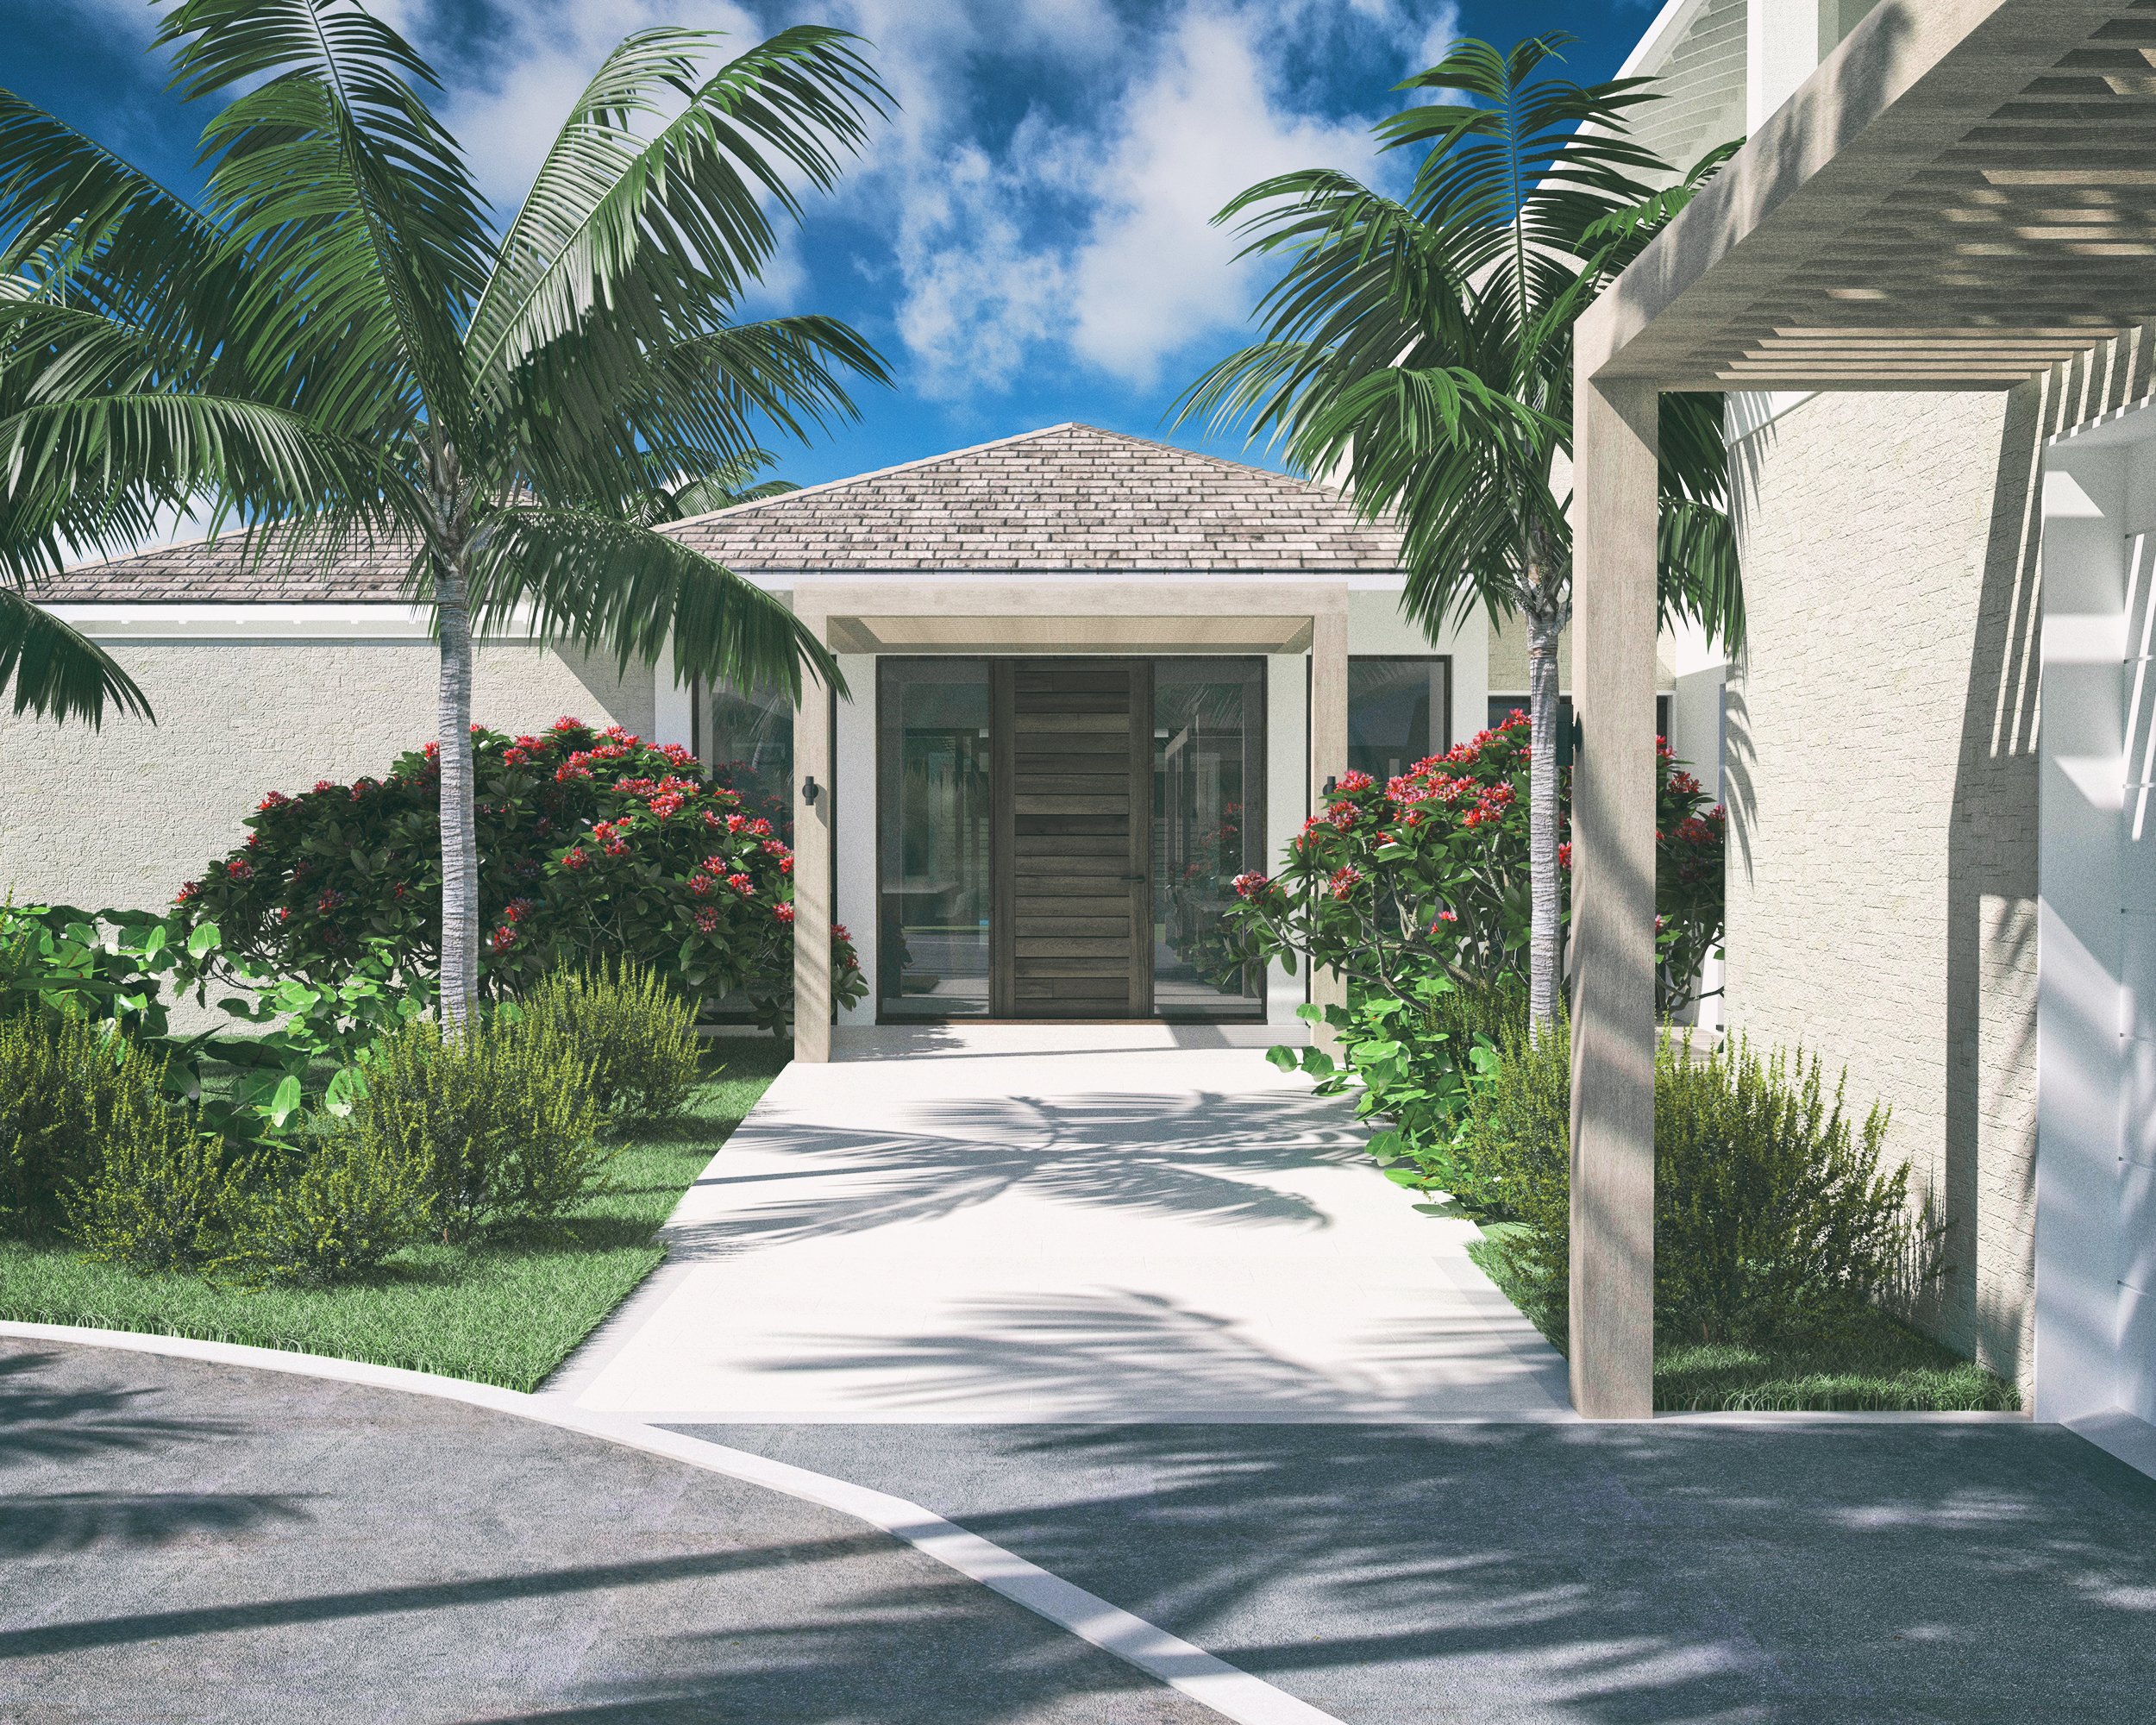 Rendered image of the front entrance